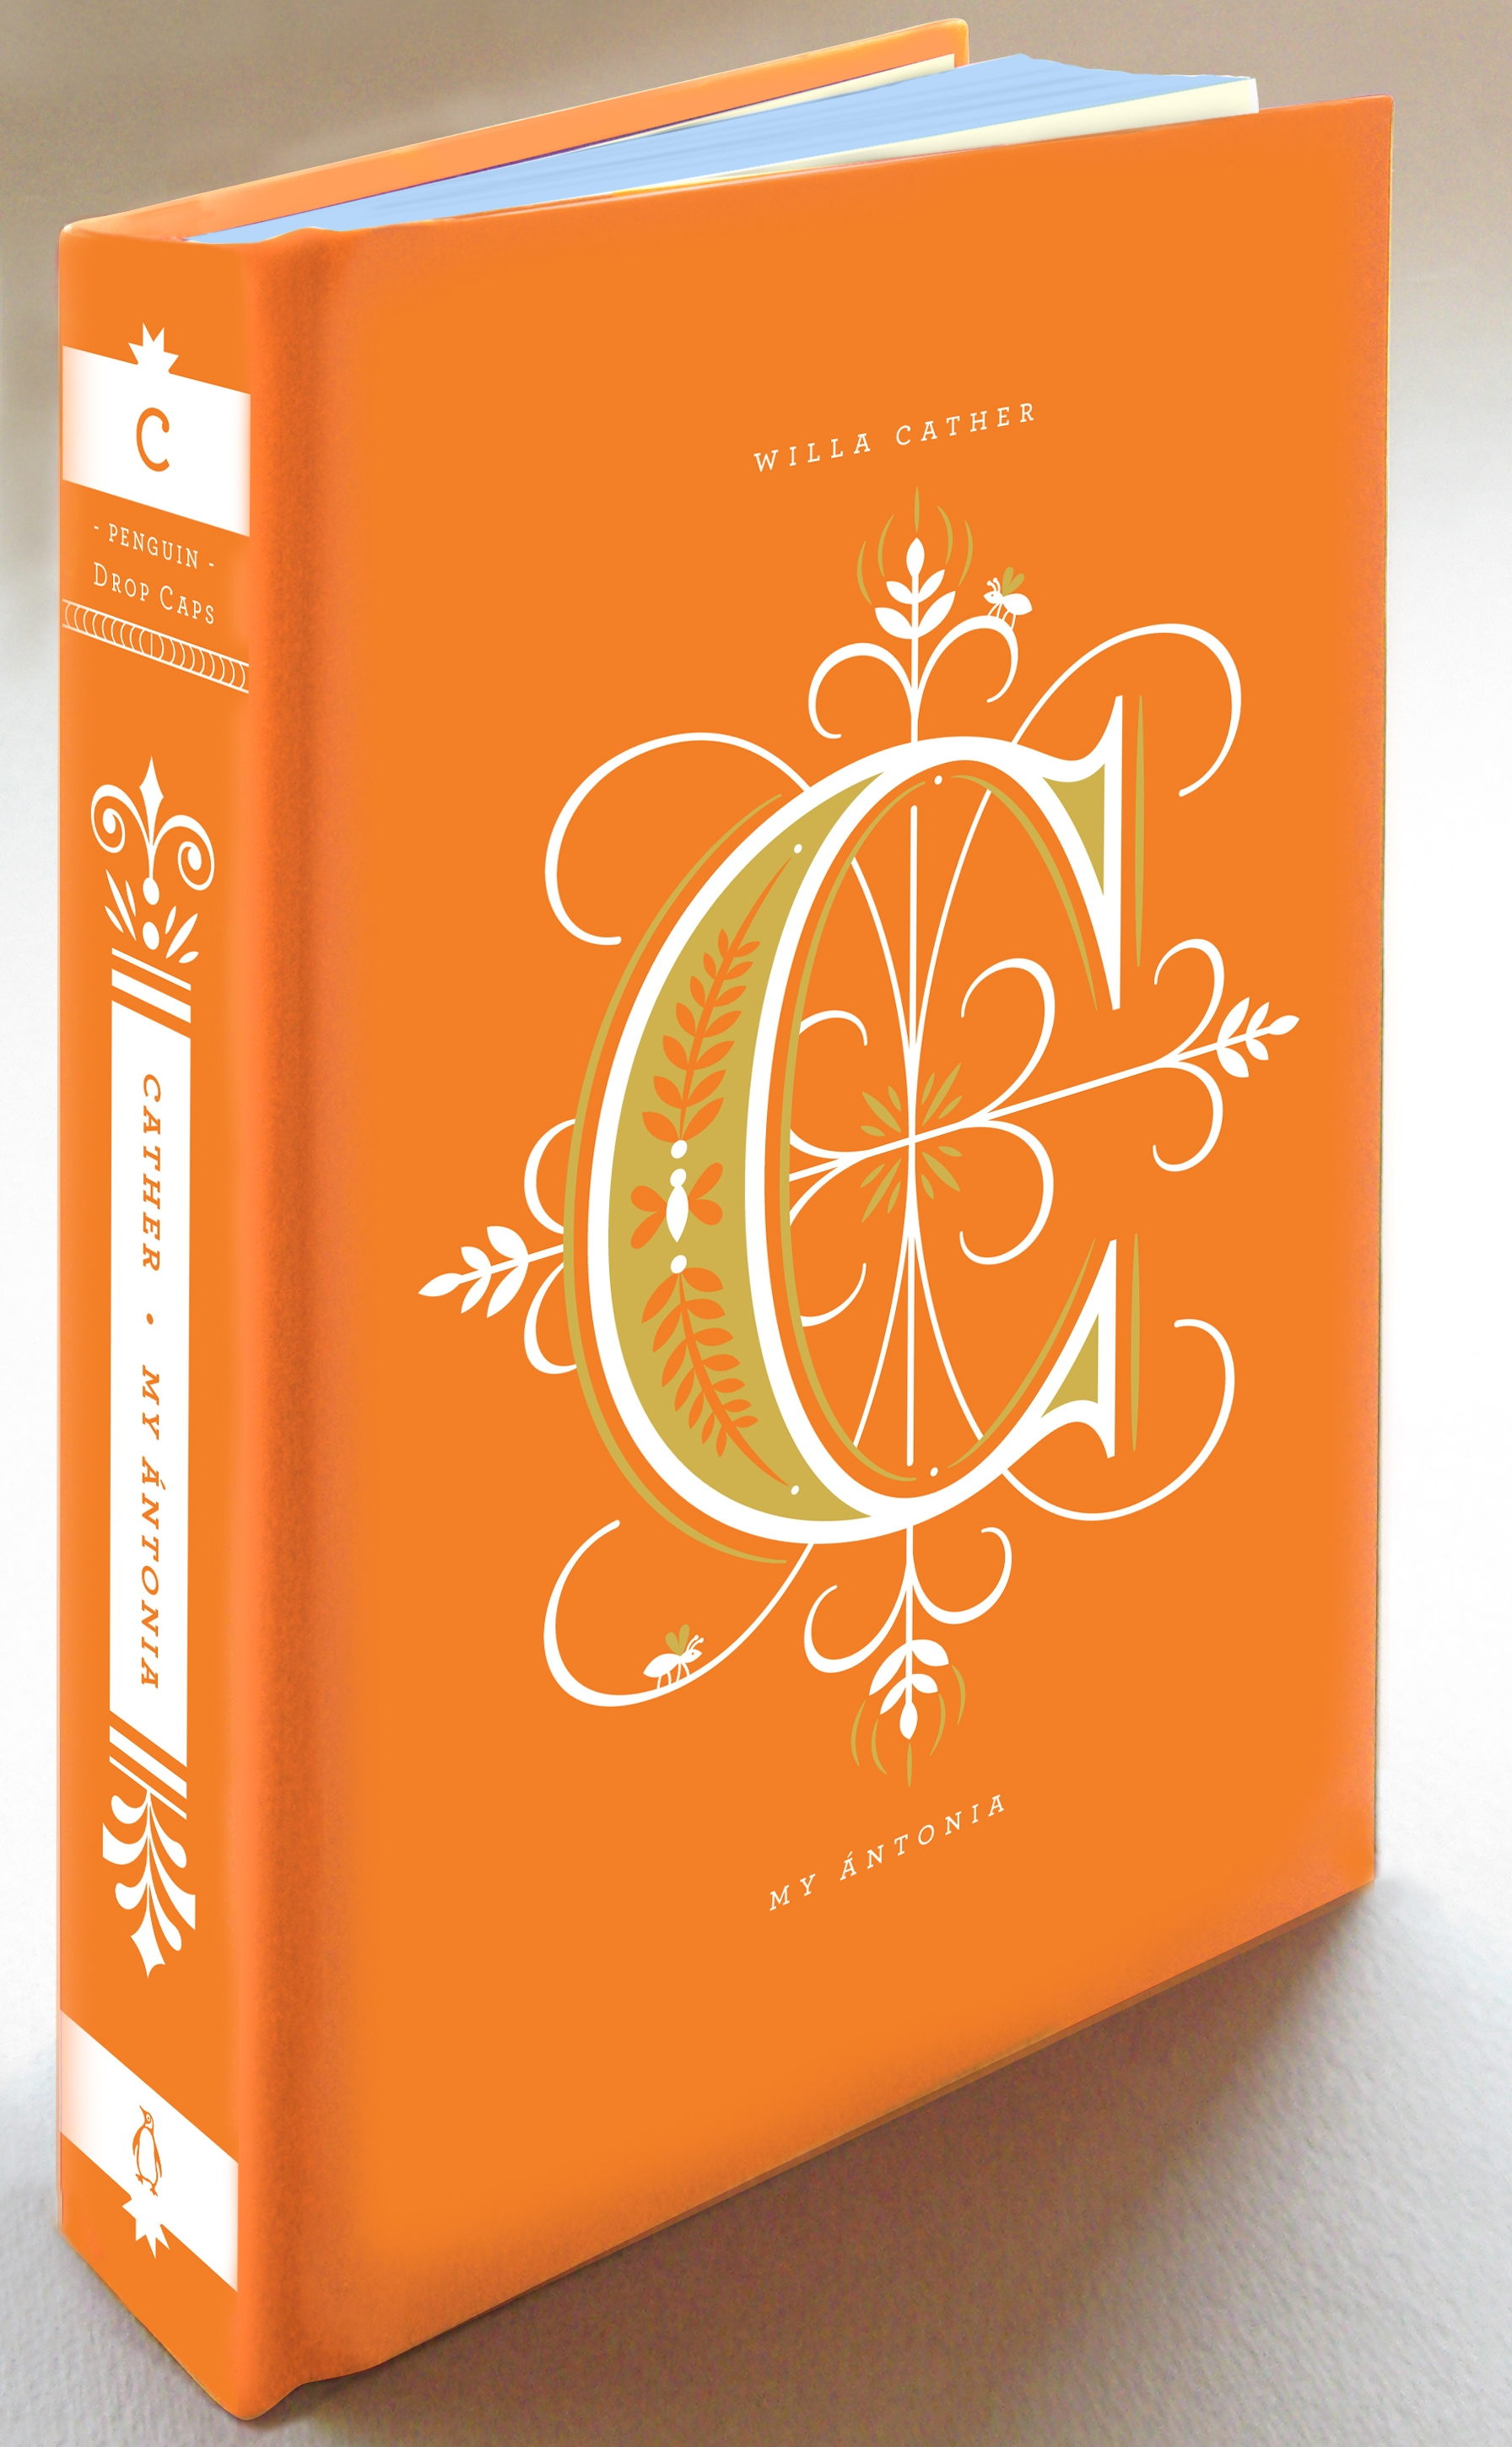 Typographic Book Cover Letter ~ Penguin book covers get 'drop cap motifs for typography